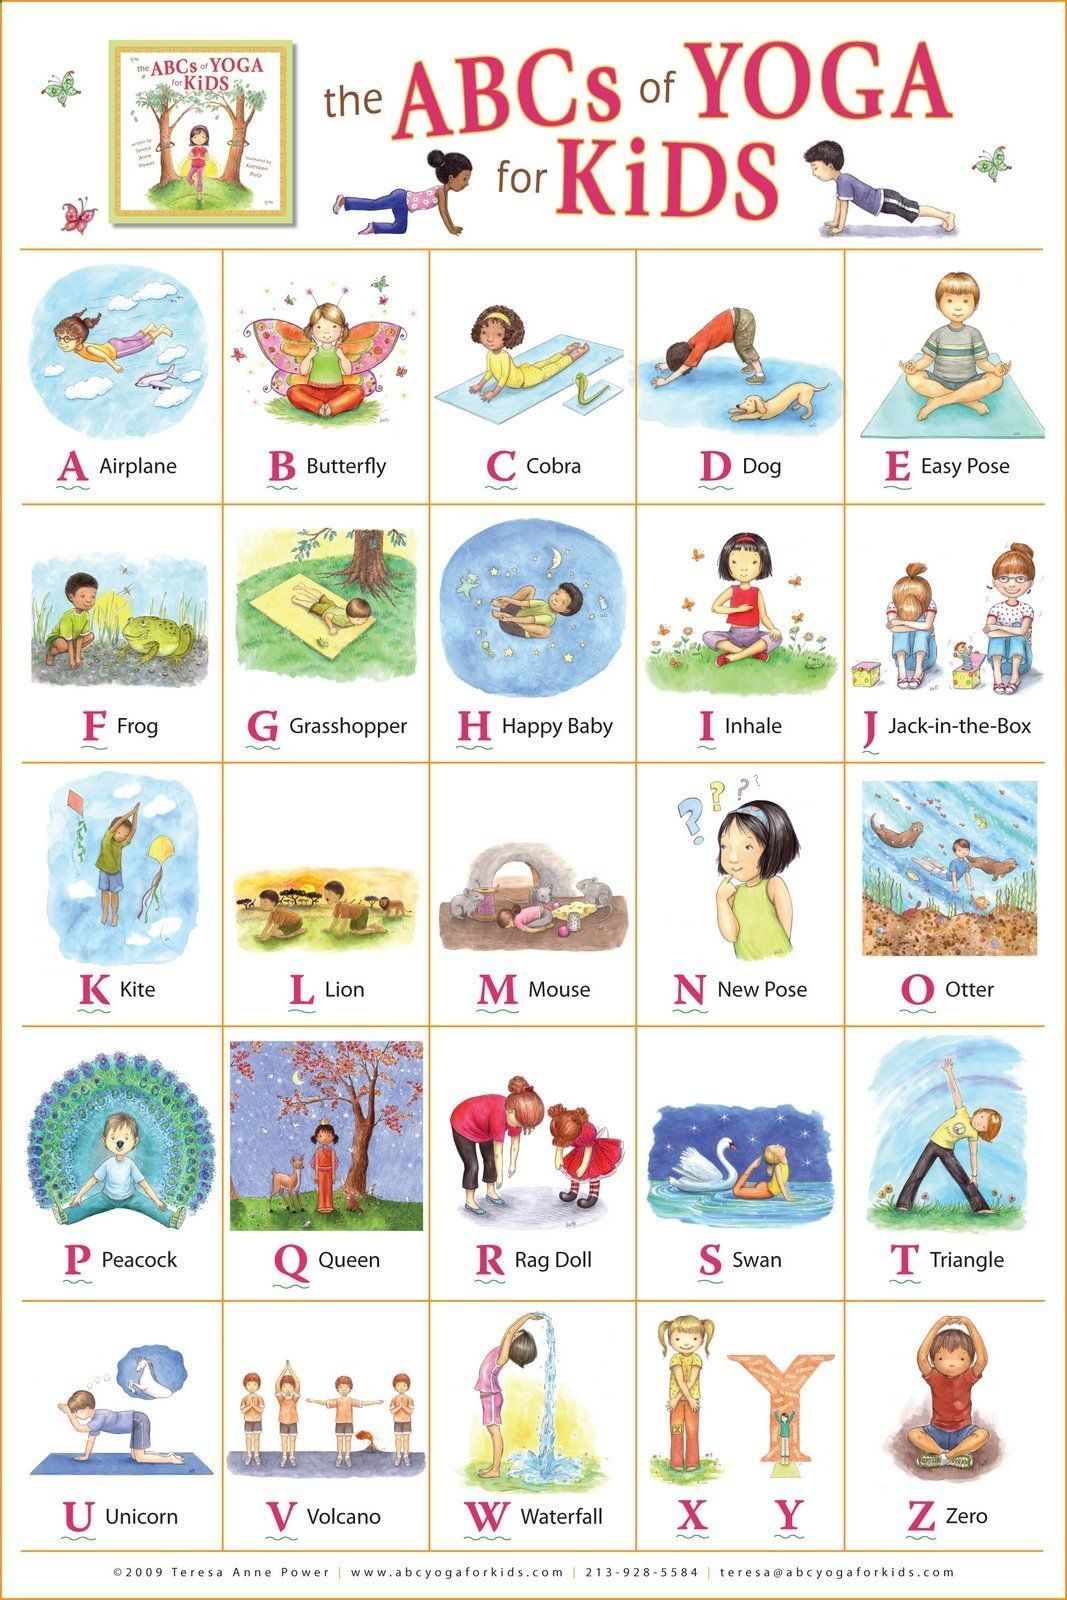 Yoga-Get Your Sexiest Body Ever Without Kathleen Rietz - Illustration and Design: The ABCs of Yoga for Kids poster. Pinterest @nostalgicnora Get your sexiest body ever without,crunches,cardio,or ever setting foot in a gym